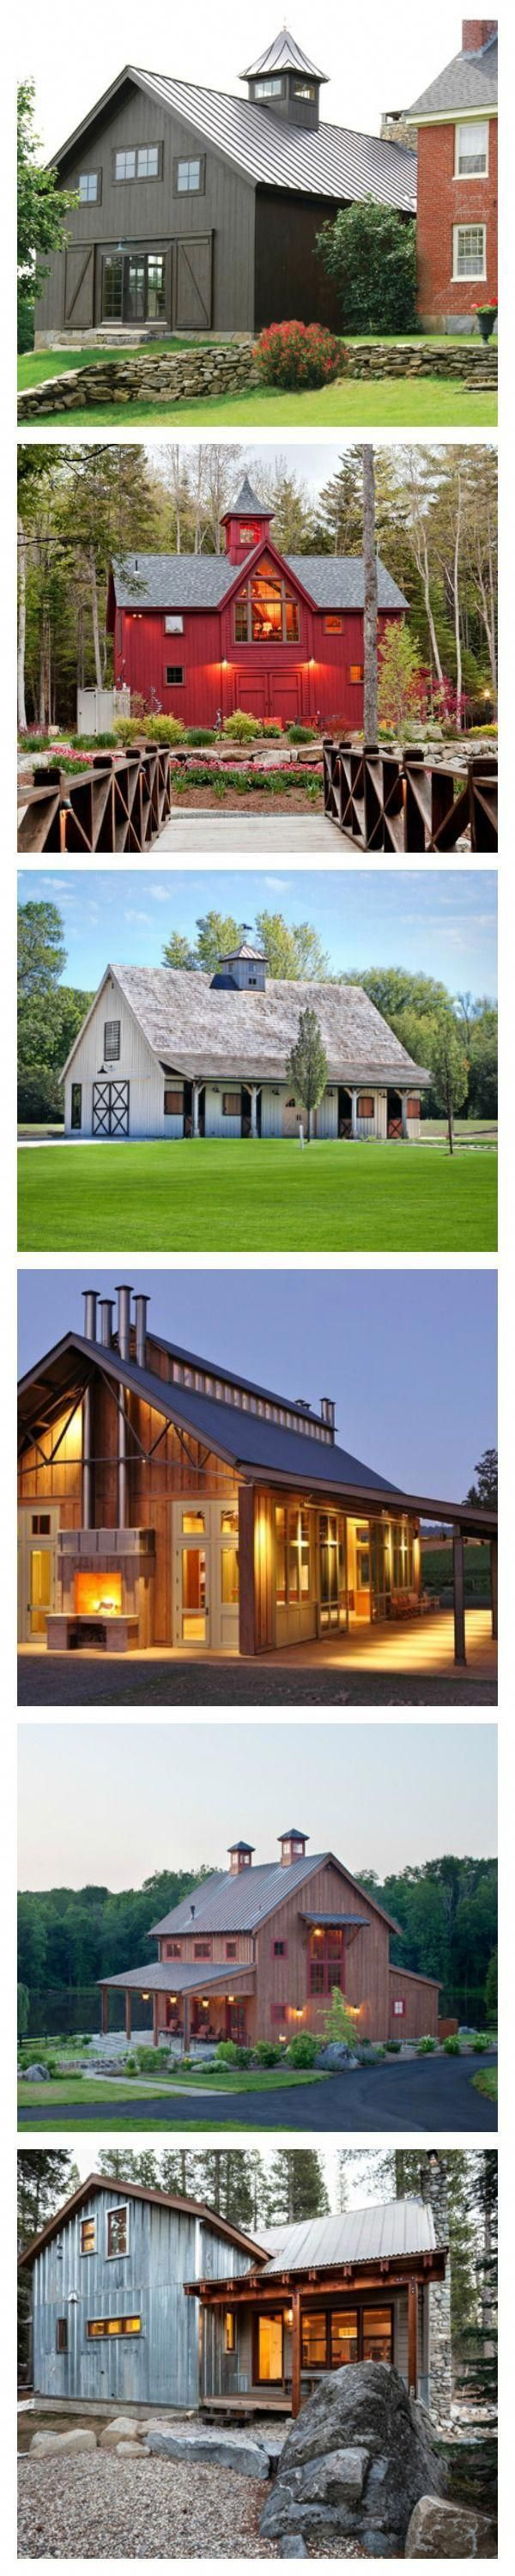 Pole Barn Home Design Idea, Pictures, Popular Pin Ideas. #homeremodelingbeforeandafter #polebarngarage Pole Barn Home Design Idea, Pictures, Popular Pin Ideas. #homeremodelingbeforeandafter #polebarndesigns Pole Barn Home Design Idea, Pictures, Popular Pin Ideas. #homeremodelingbeforeandafter #polebarngarage Pole Barn Home Design Idea, Pictures, Popular Pin Ideas. #homeremodelingbeforeandafter #polebarngarage Pole Barn Home Design Idea, Pictures, Popular Pin Ideas. #homeremodelingbeforeandafter #polebarnhouses